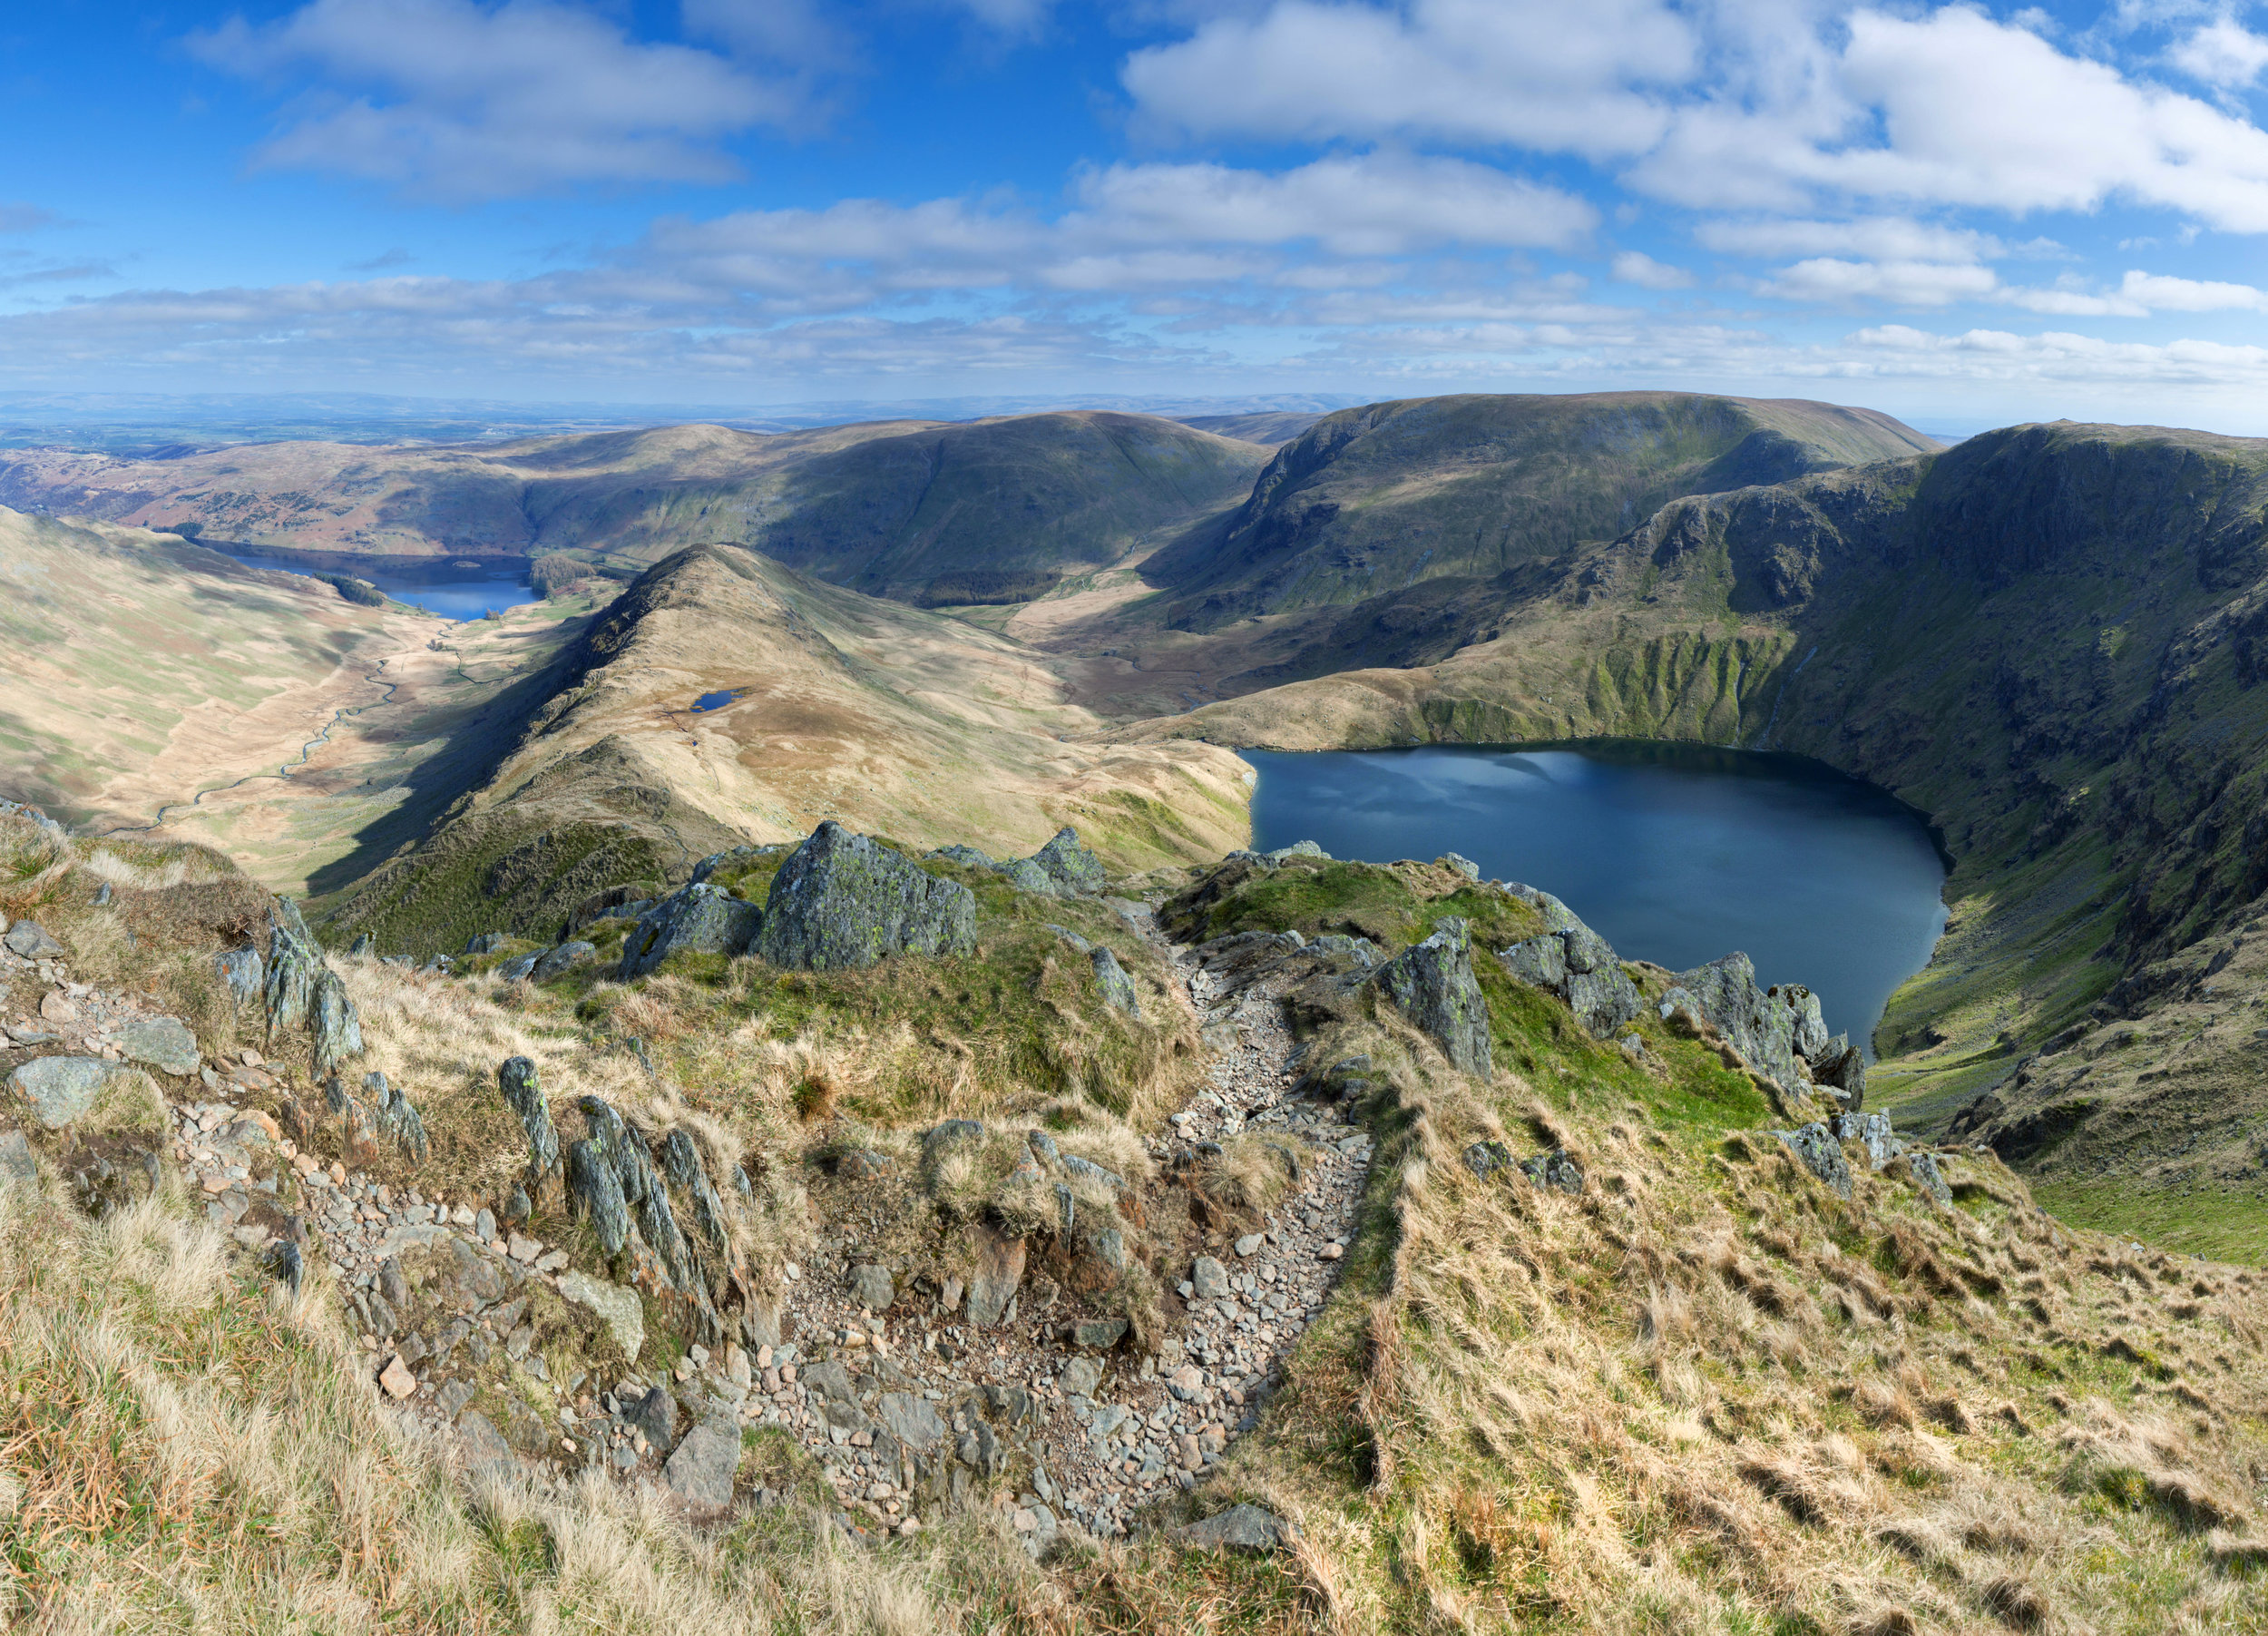 Looking down the Long Stile ridge, with Blea Water in the foreground and Haweswater beyond.